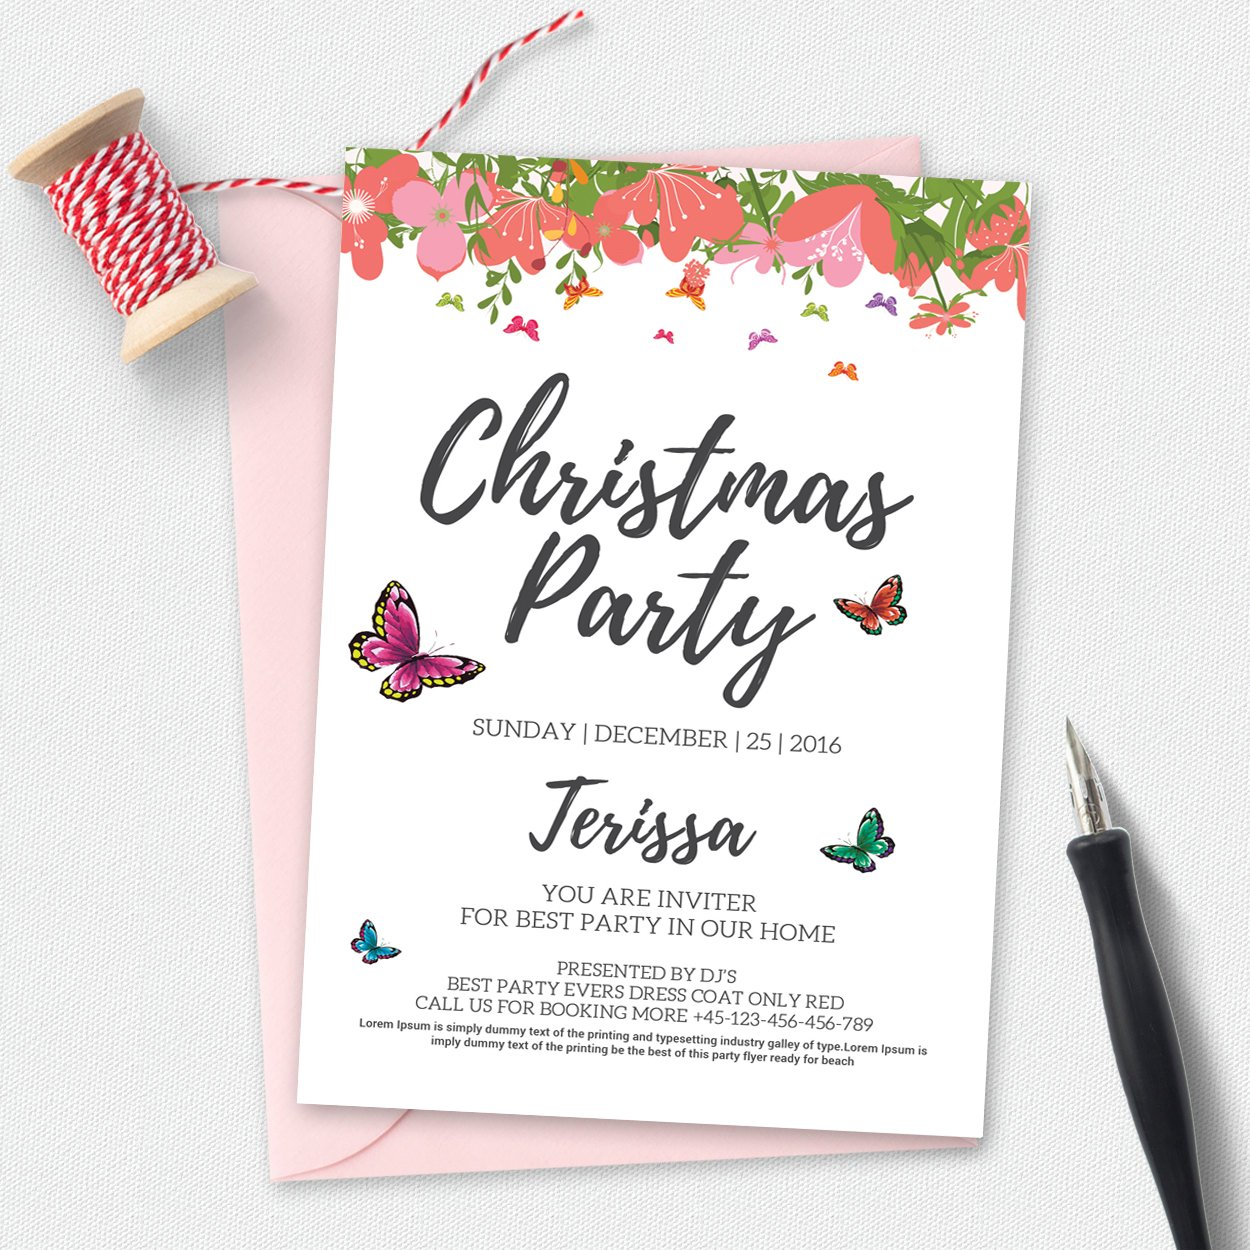 christmas party invitation template invitation templates creative market. Black Bedroom Furniture Sets. Home Design Ideas